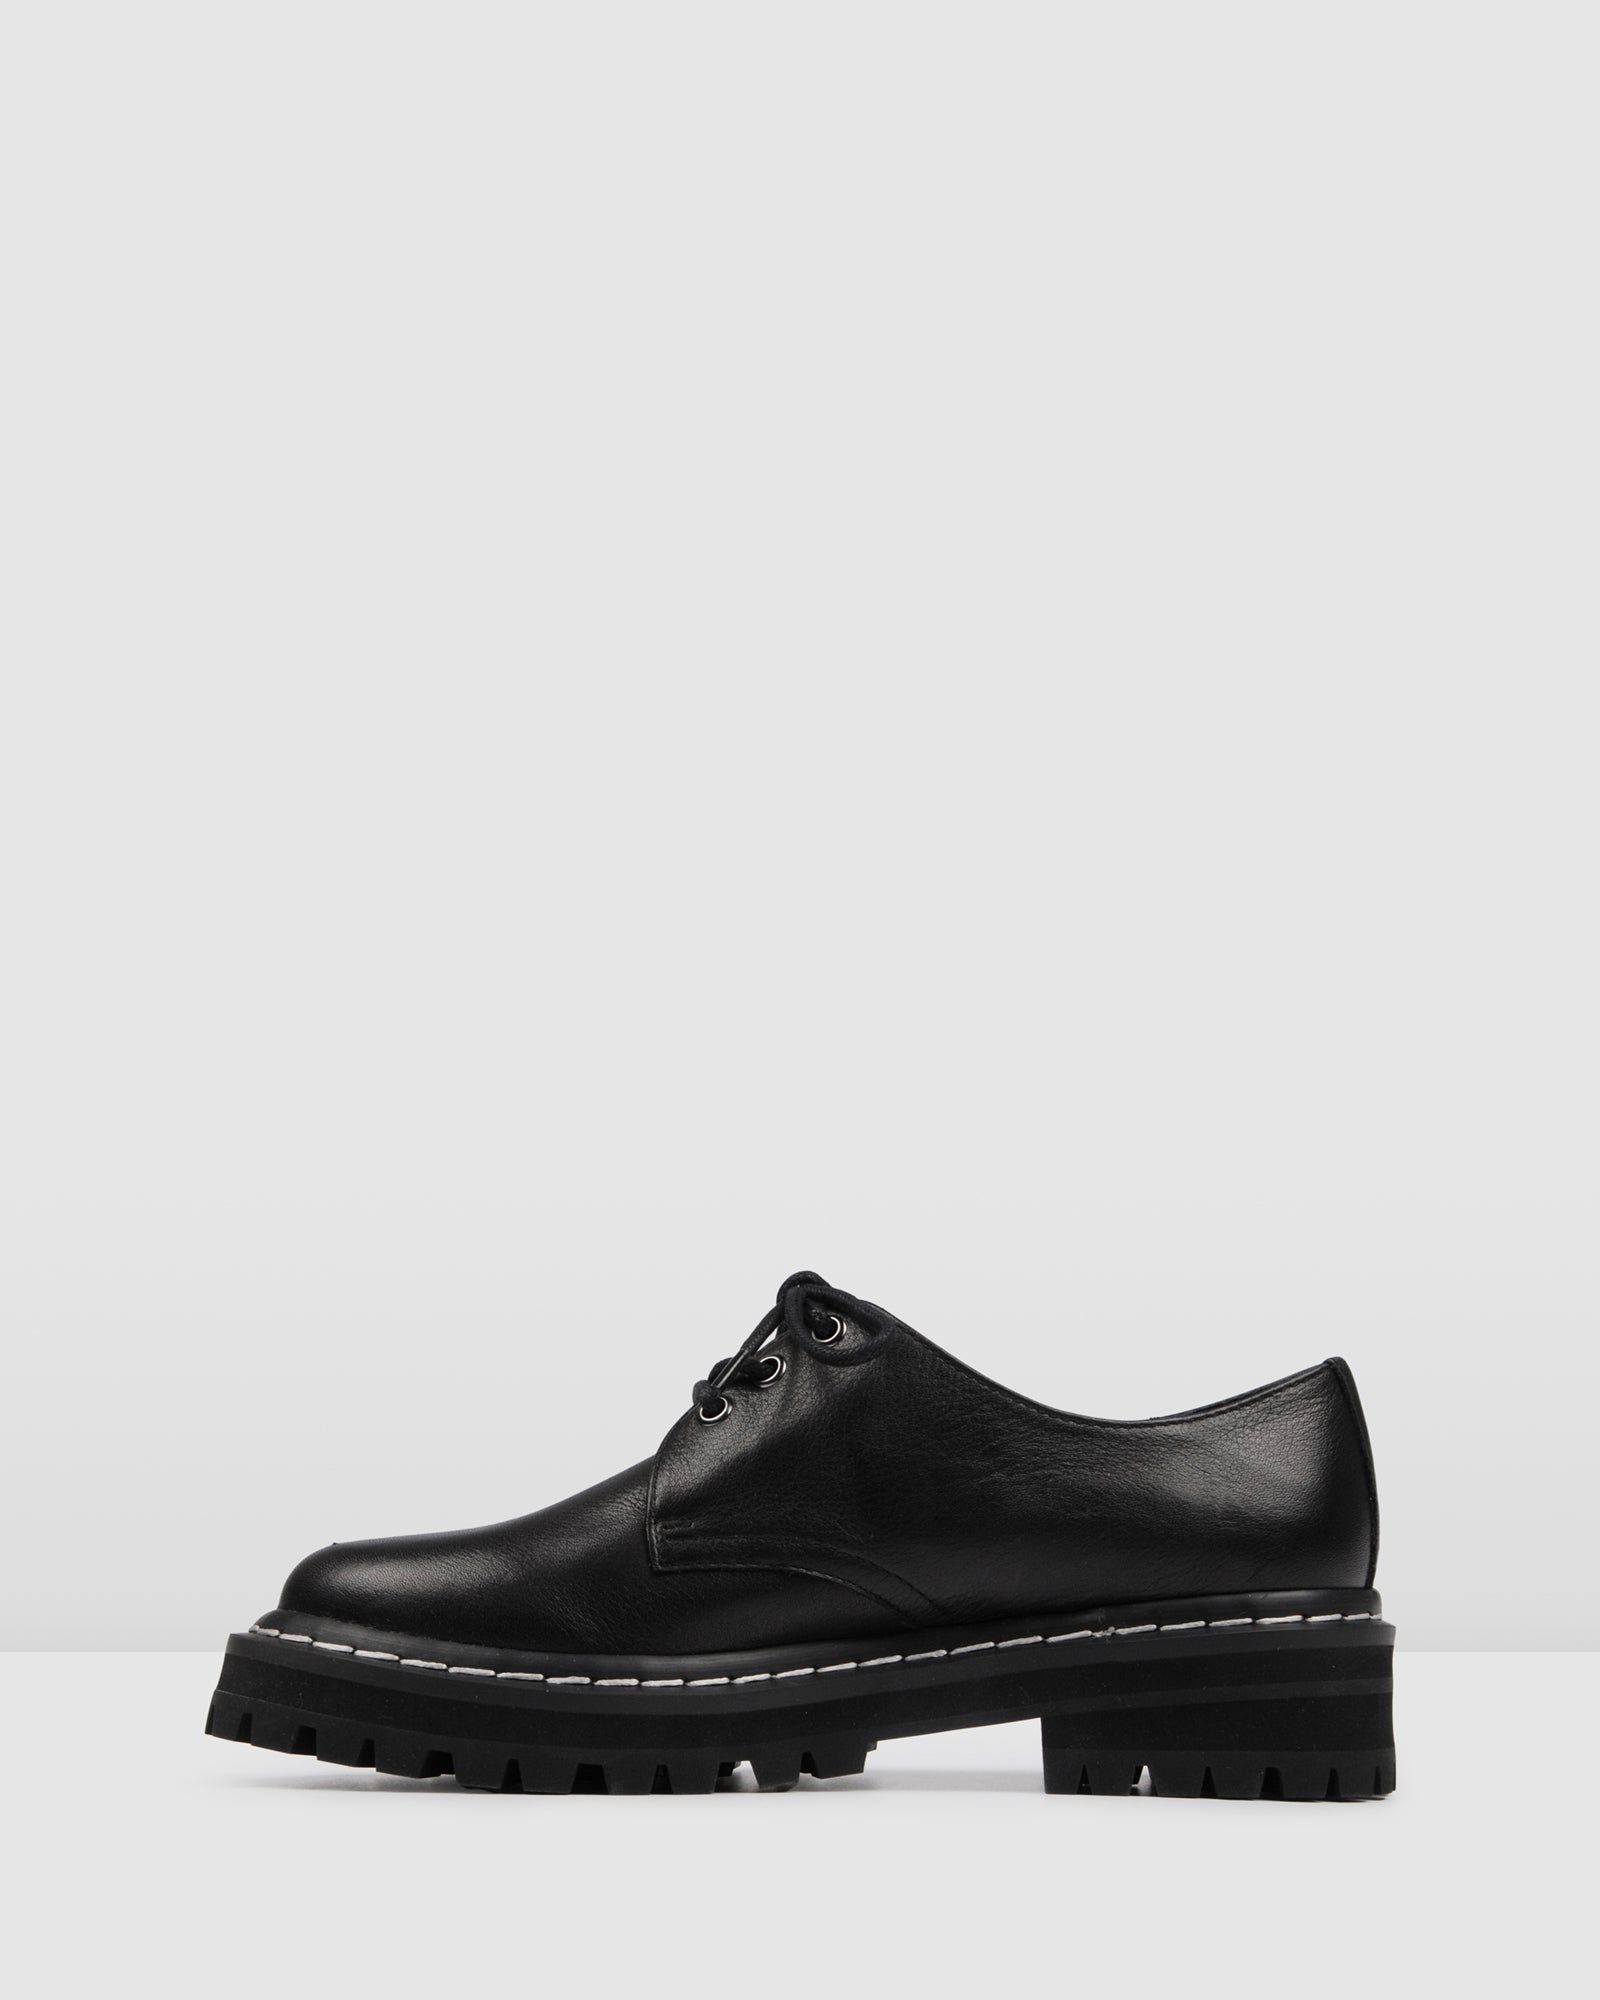 LORD LACE UPS BLACK LEATHER